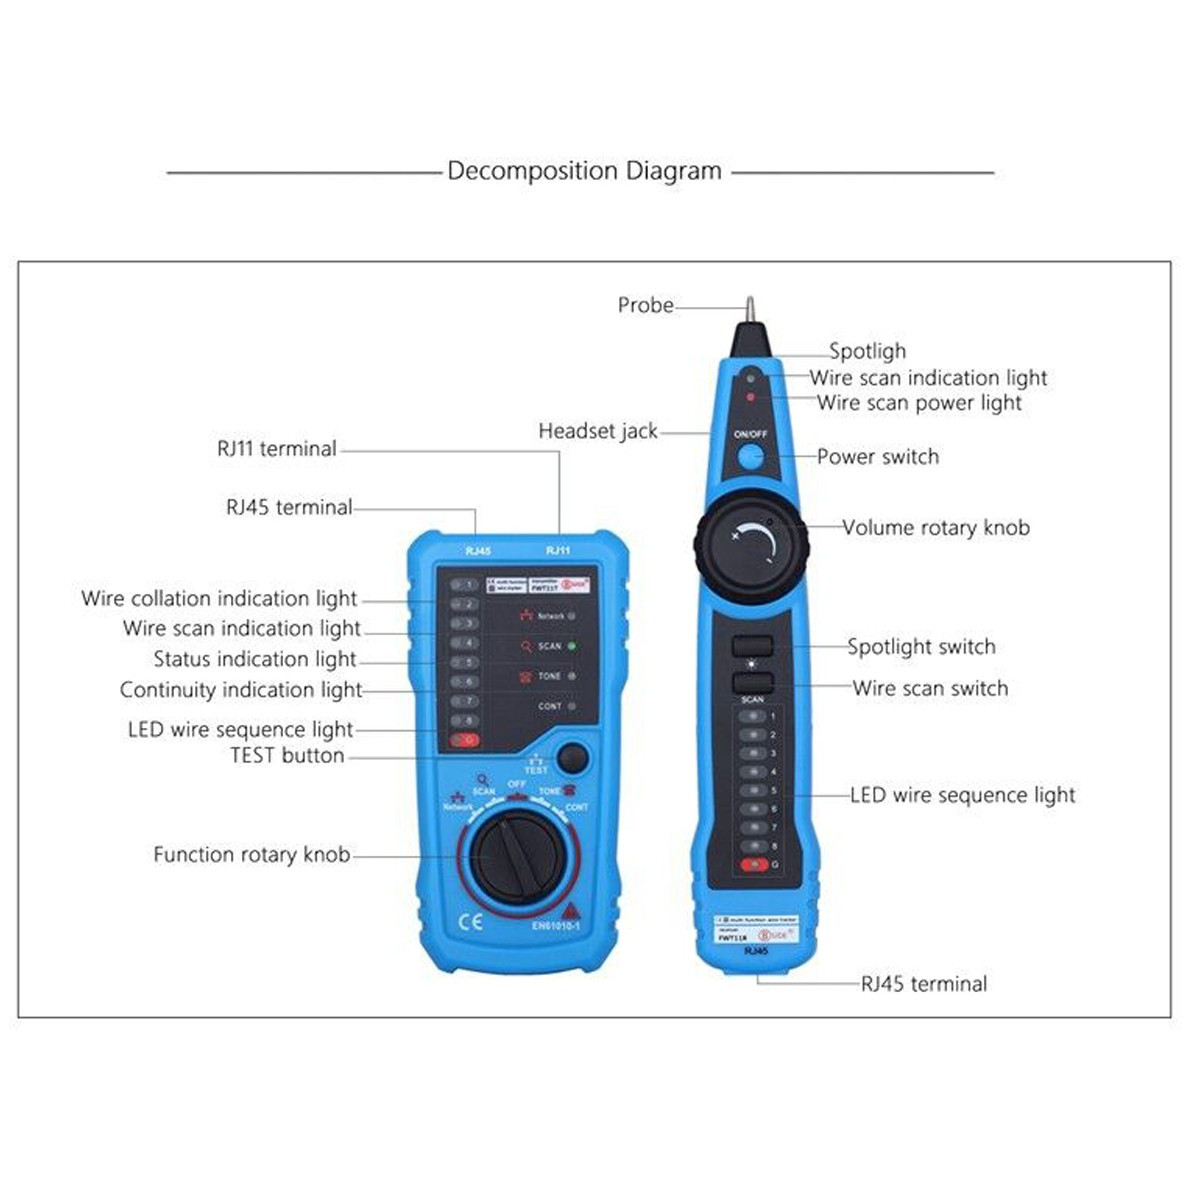 cd7b07fa 7ccf d6e1 12b8 3d20afc9b19c elegiant rj11 rj45 cable tester multifunction wire tracker check rj11 to rj45 wiring diagram at honlapkeszites.co